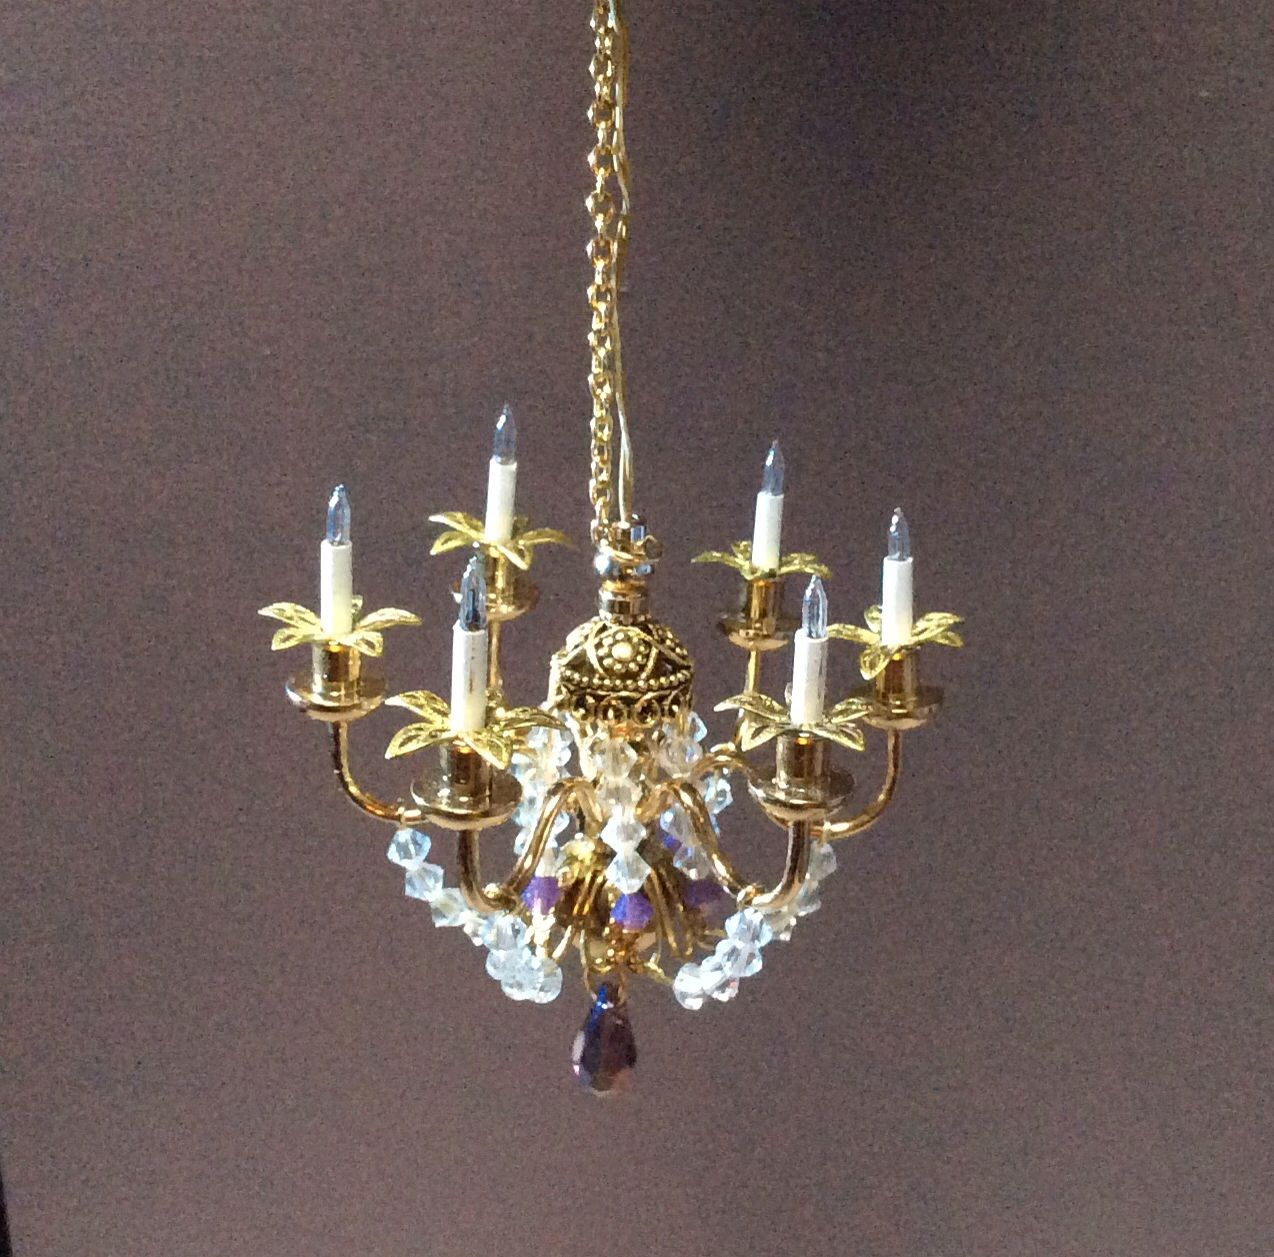 112 scale mini chandelier by nina eary miniature lamps 112 scale mini chandelier by nina eary arubaitofo Images